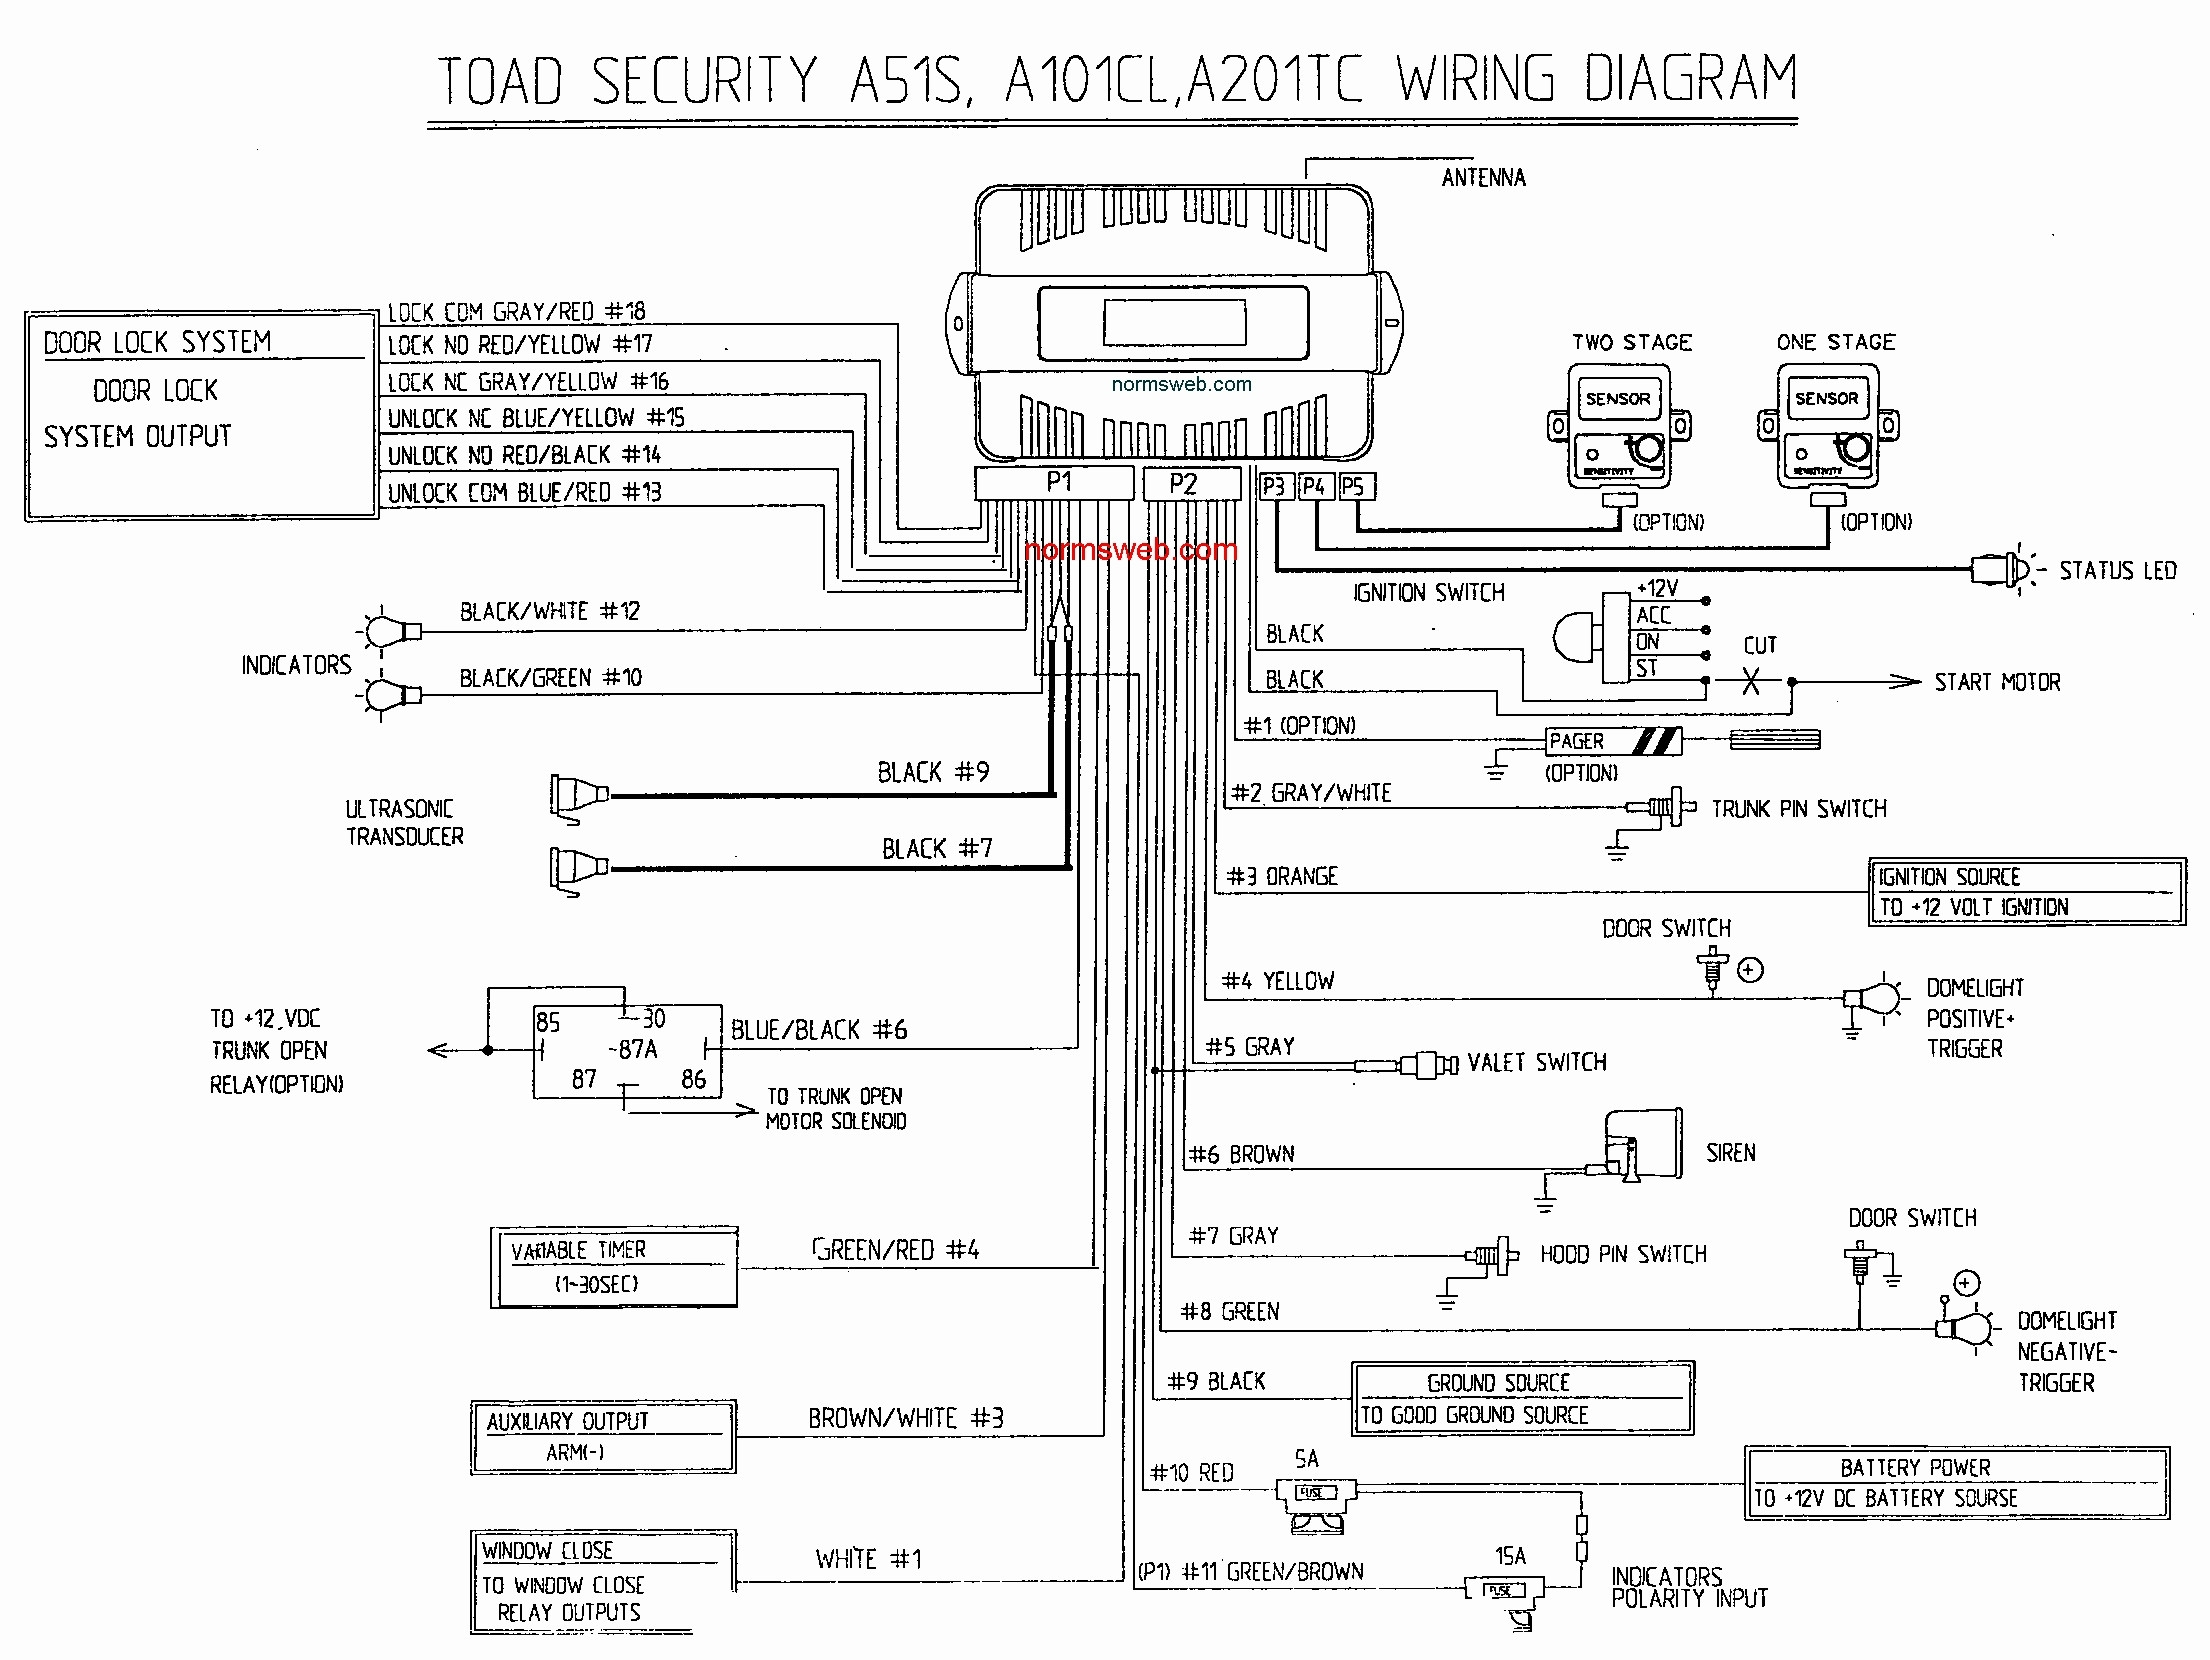 Jeep Fuse Box Diagram Under Dash On Karr Alarm System Wiring ... Karr Alarm Wiring Diagram For Jeep Cherokee on